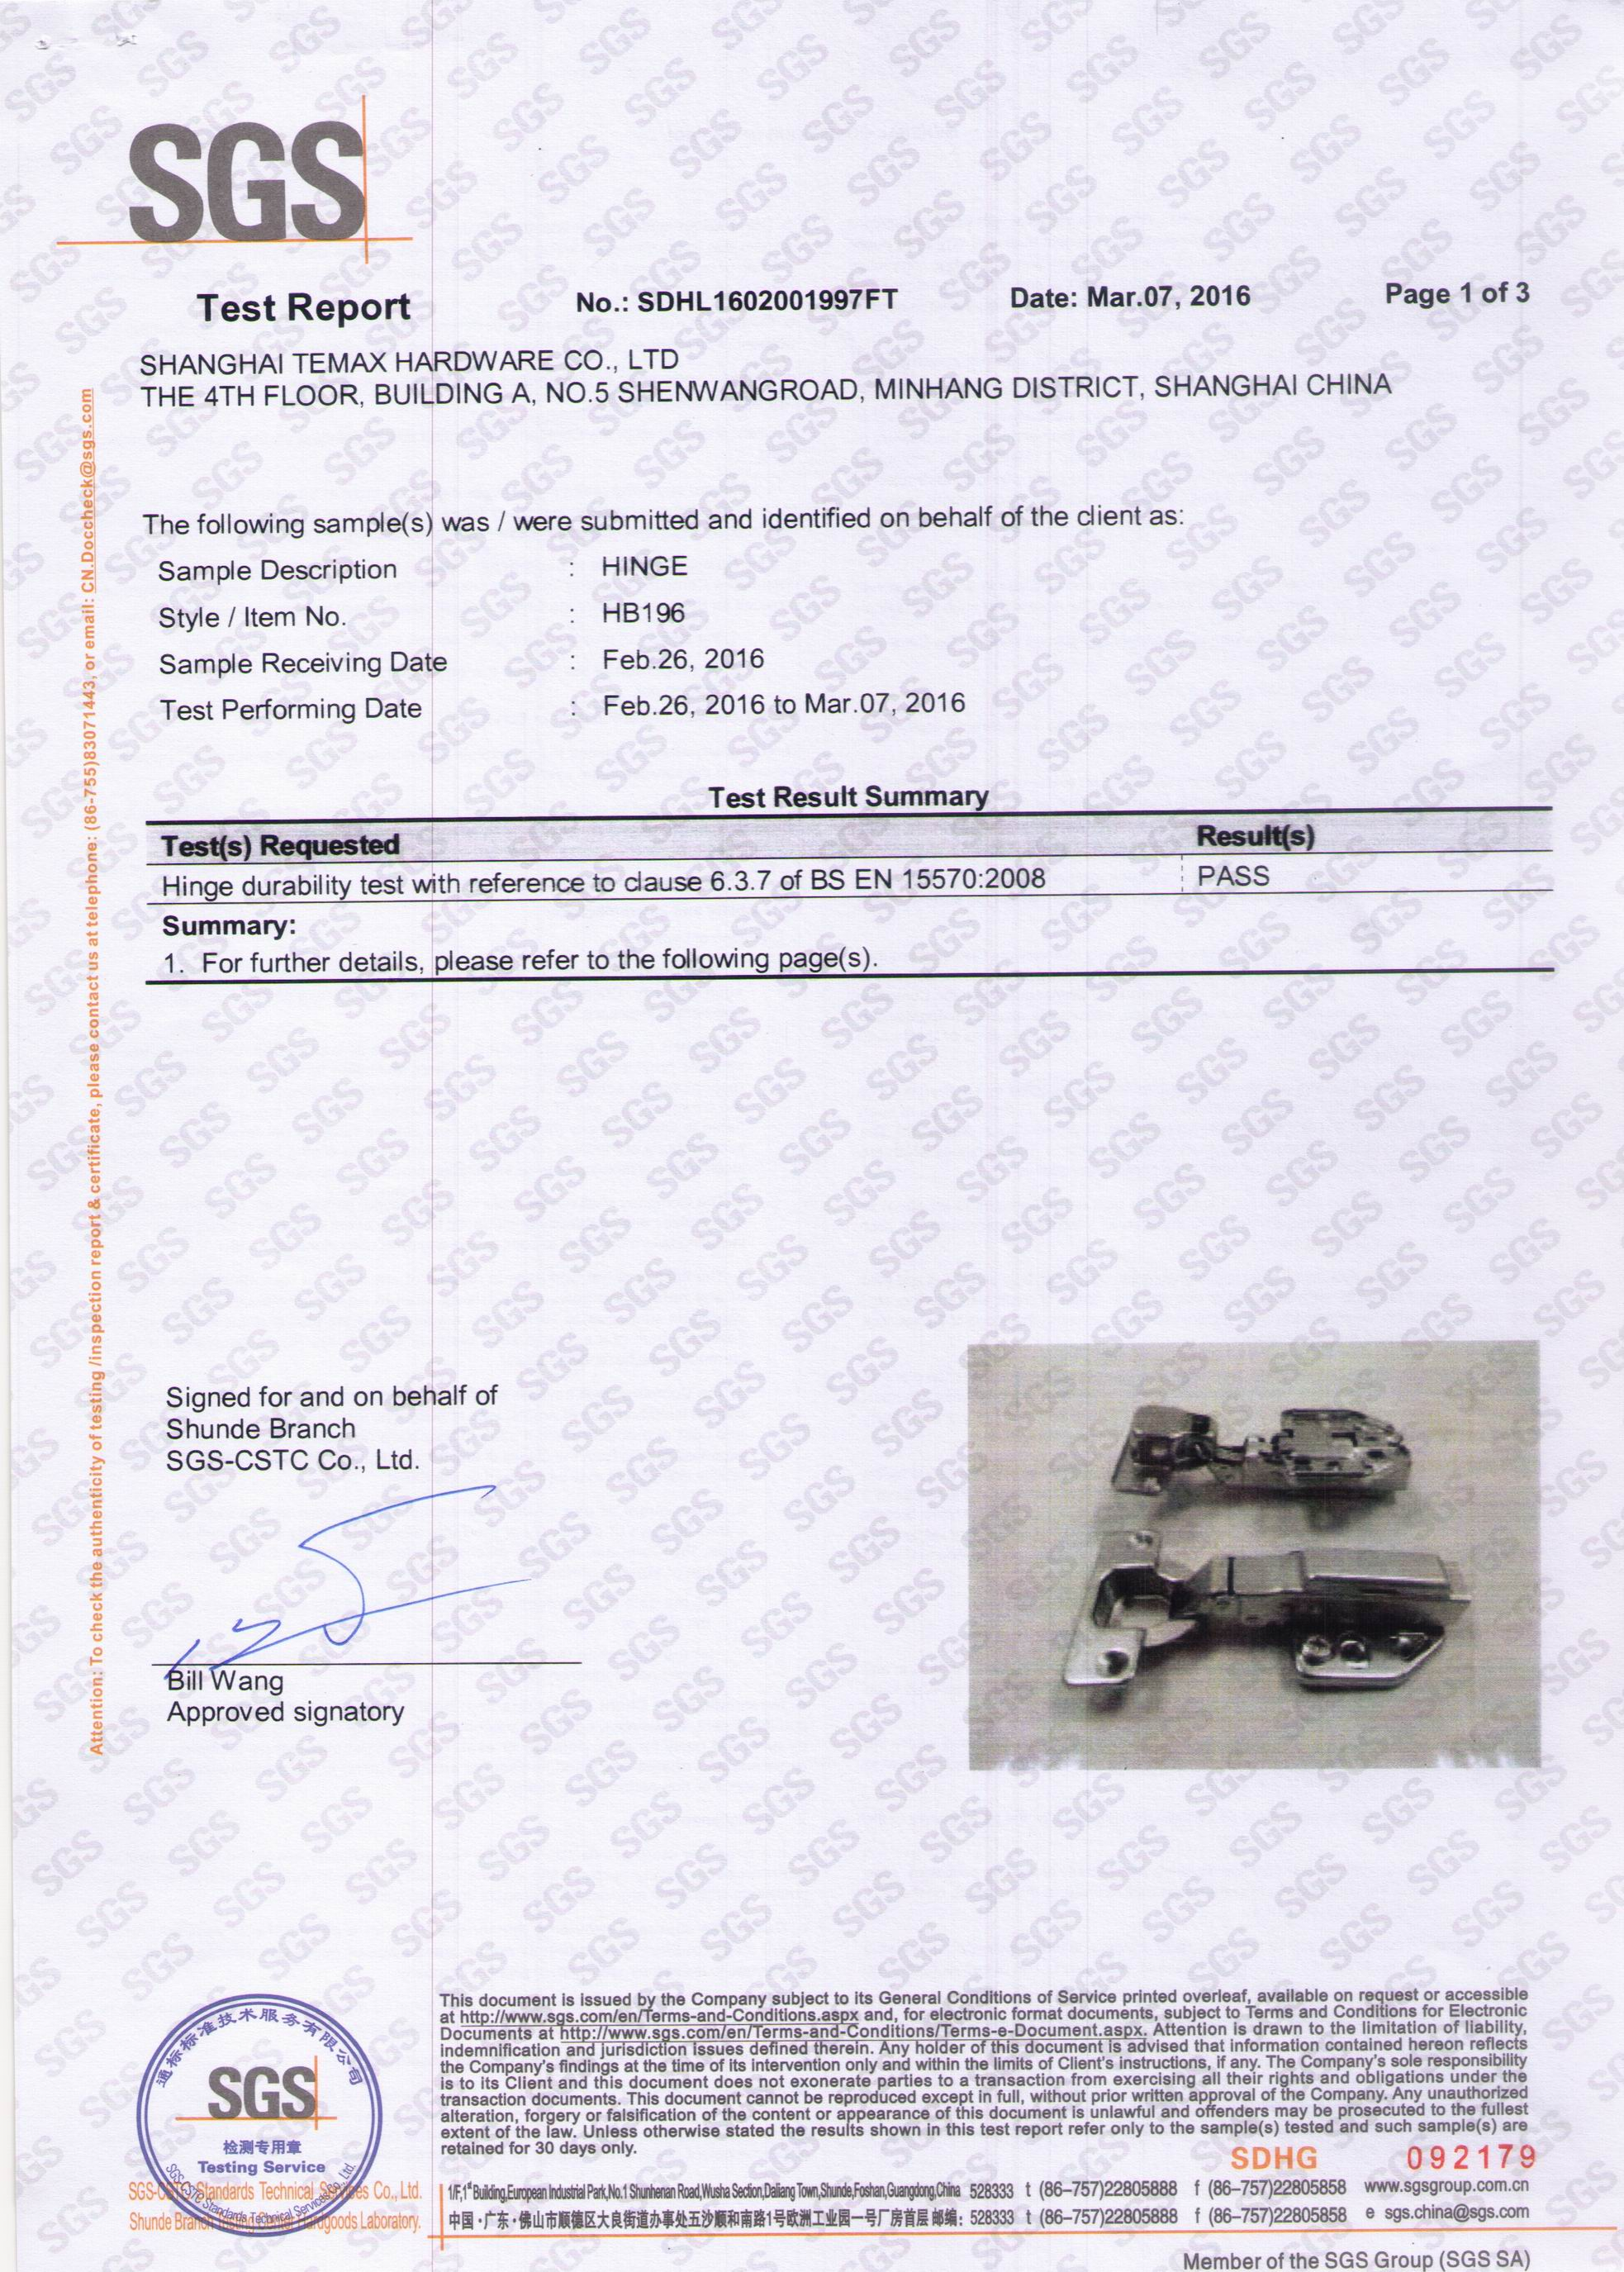 SGS Test Report of HB196